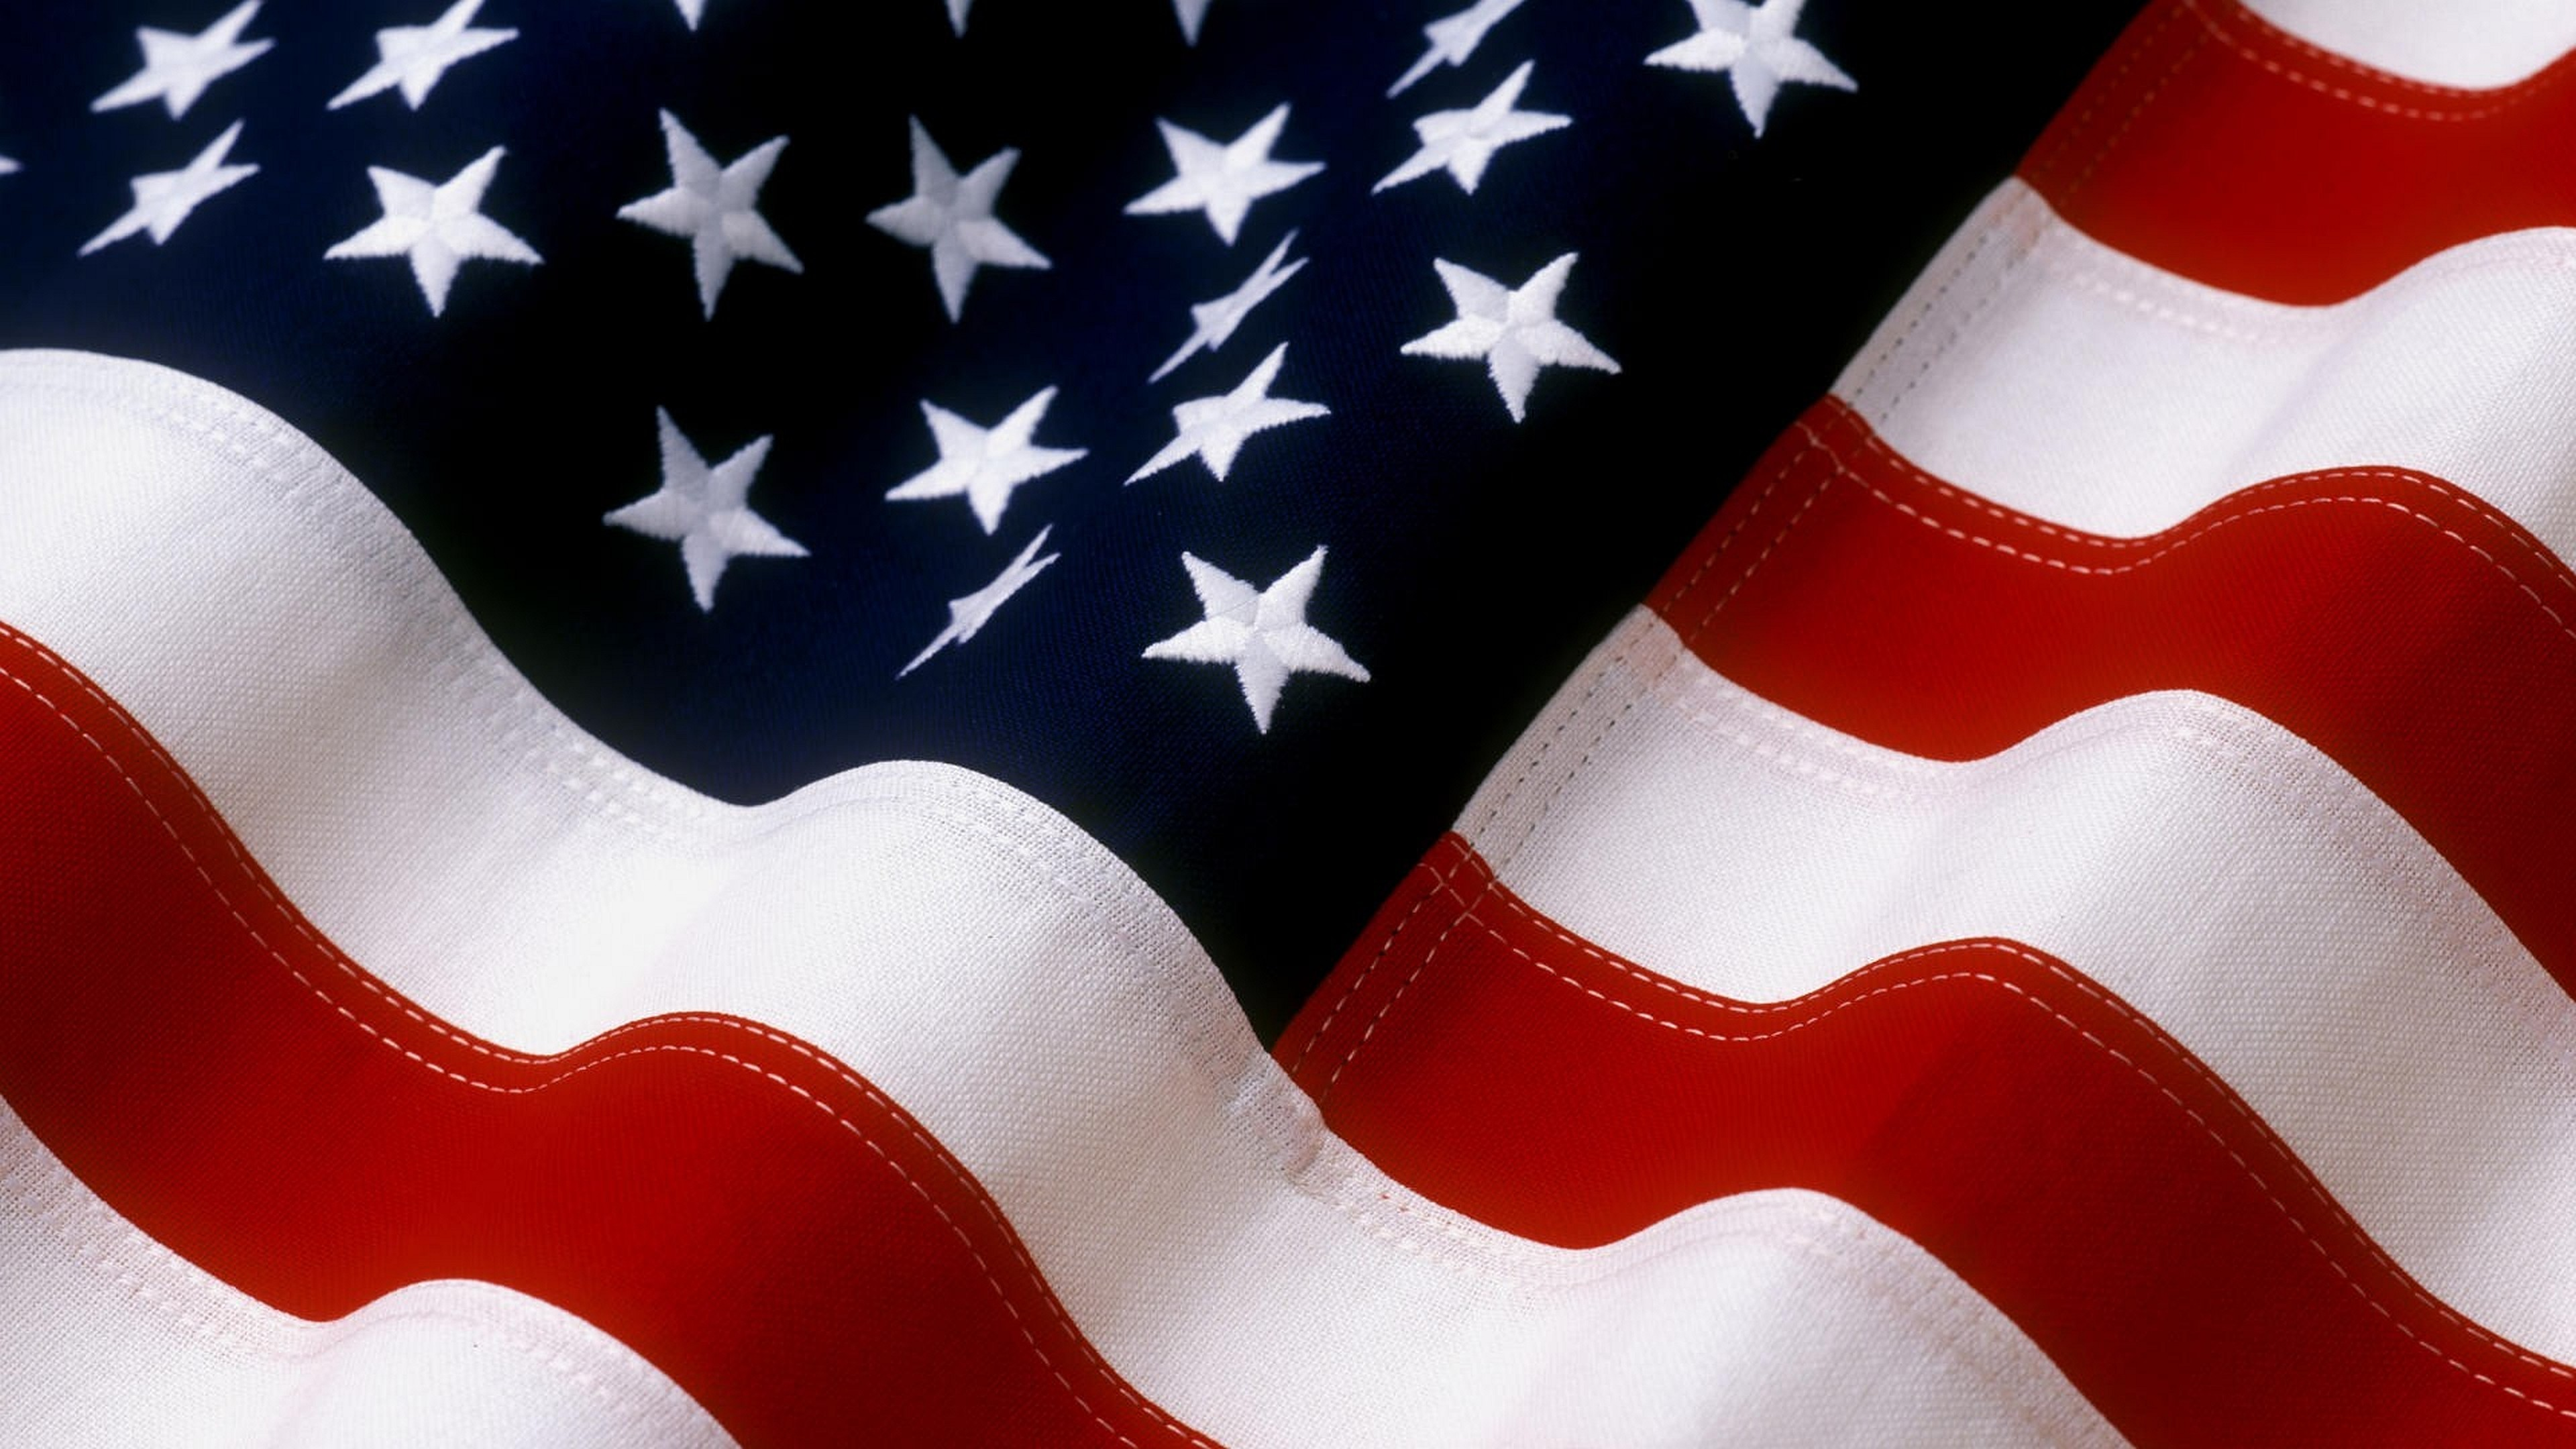 American Flag Backgrounds (75 Wallpapers)